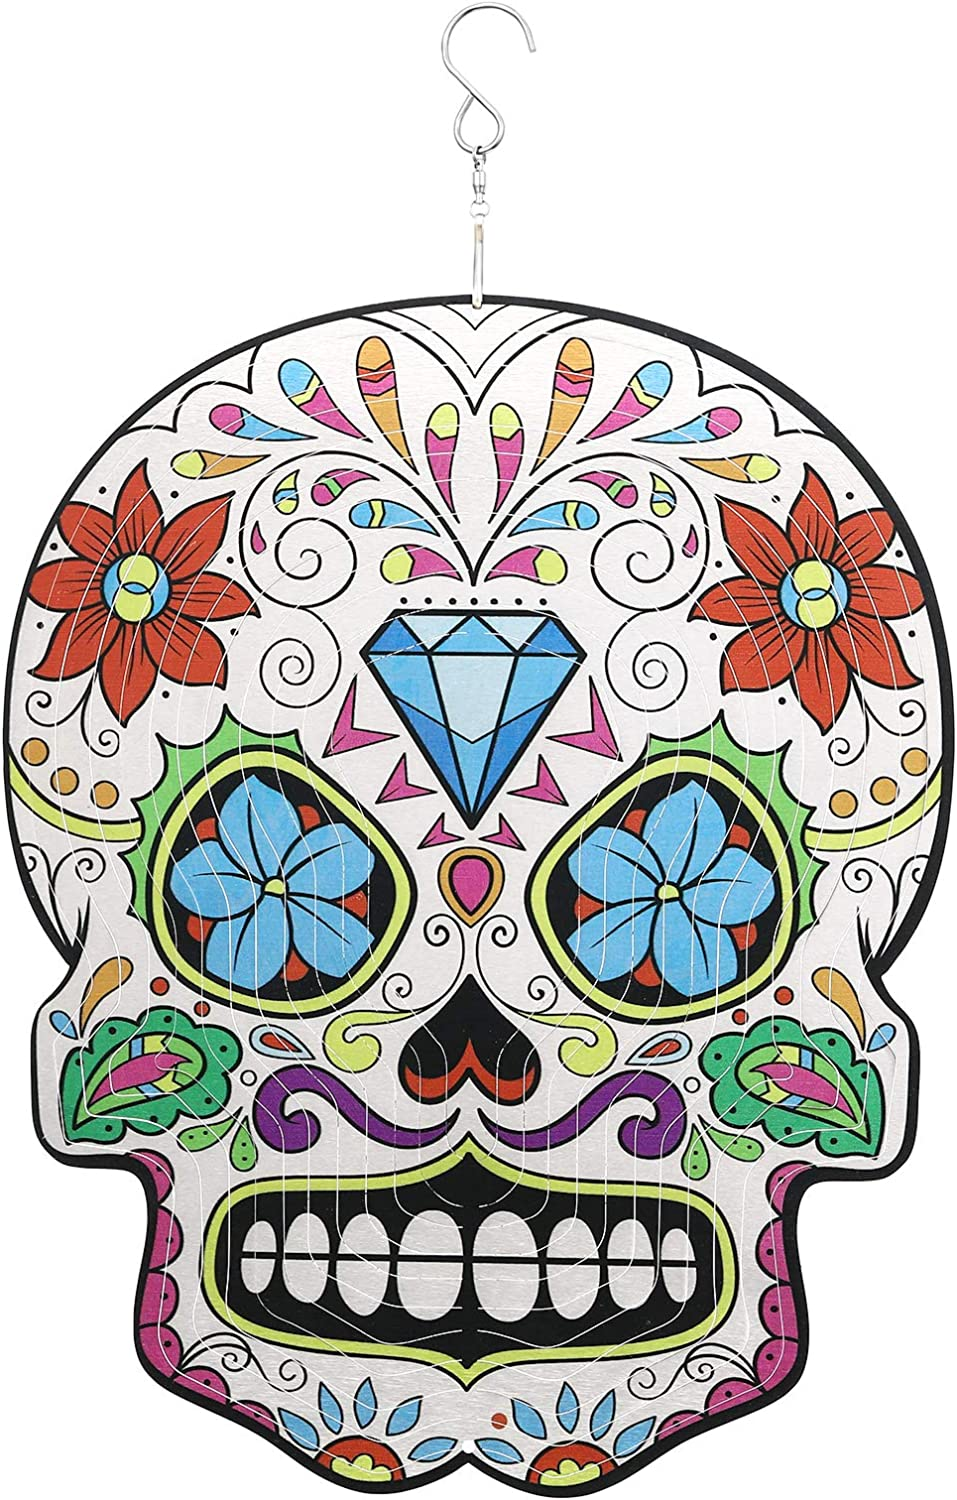 Wind spinner,Sugar Skull Metal Wind Spinners Outdoor Hanging,3D Diamond Flower Craft Kinetic Spinner for Yard Ornament Art,12inch Decorative Wind Spinners Garden Clearance,Sugar Skull Spinner Gifts